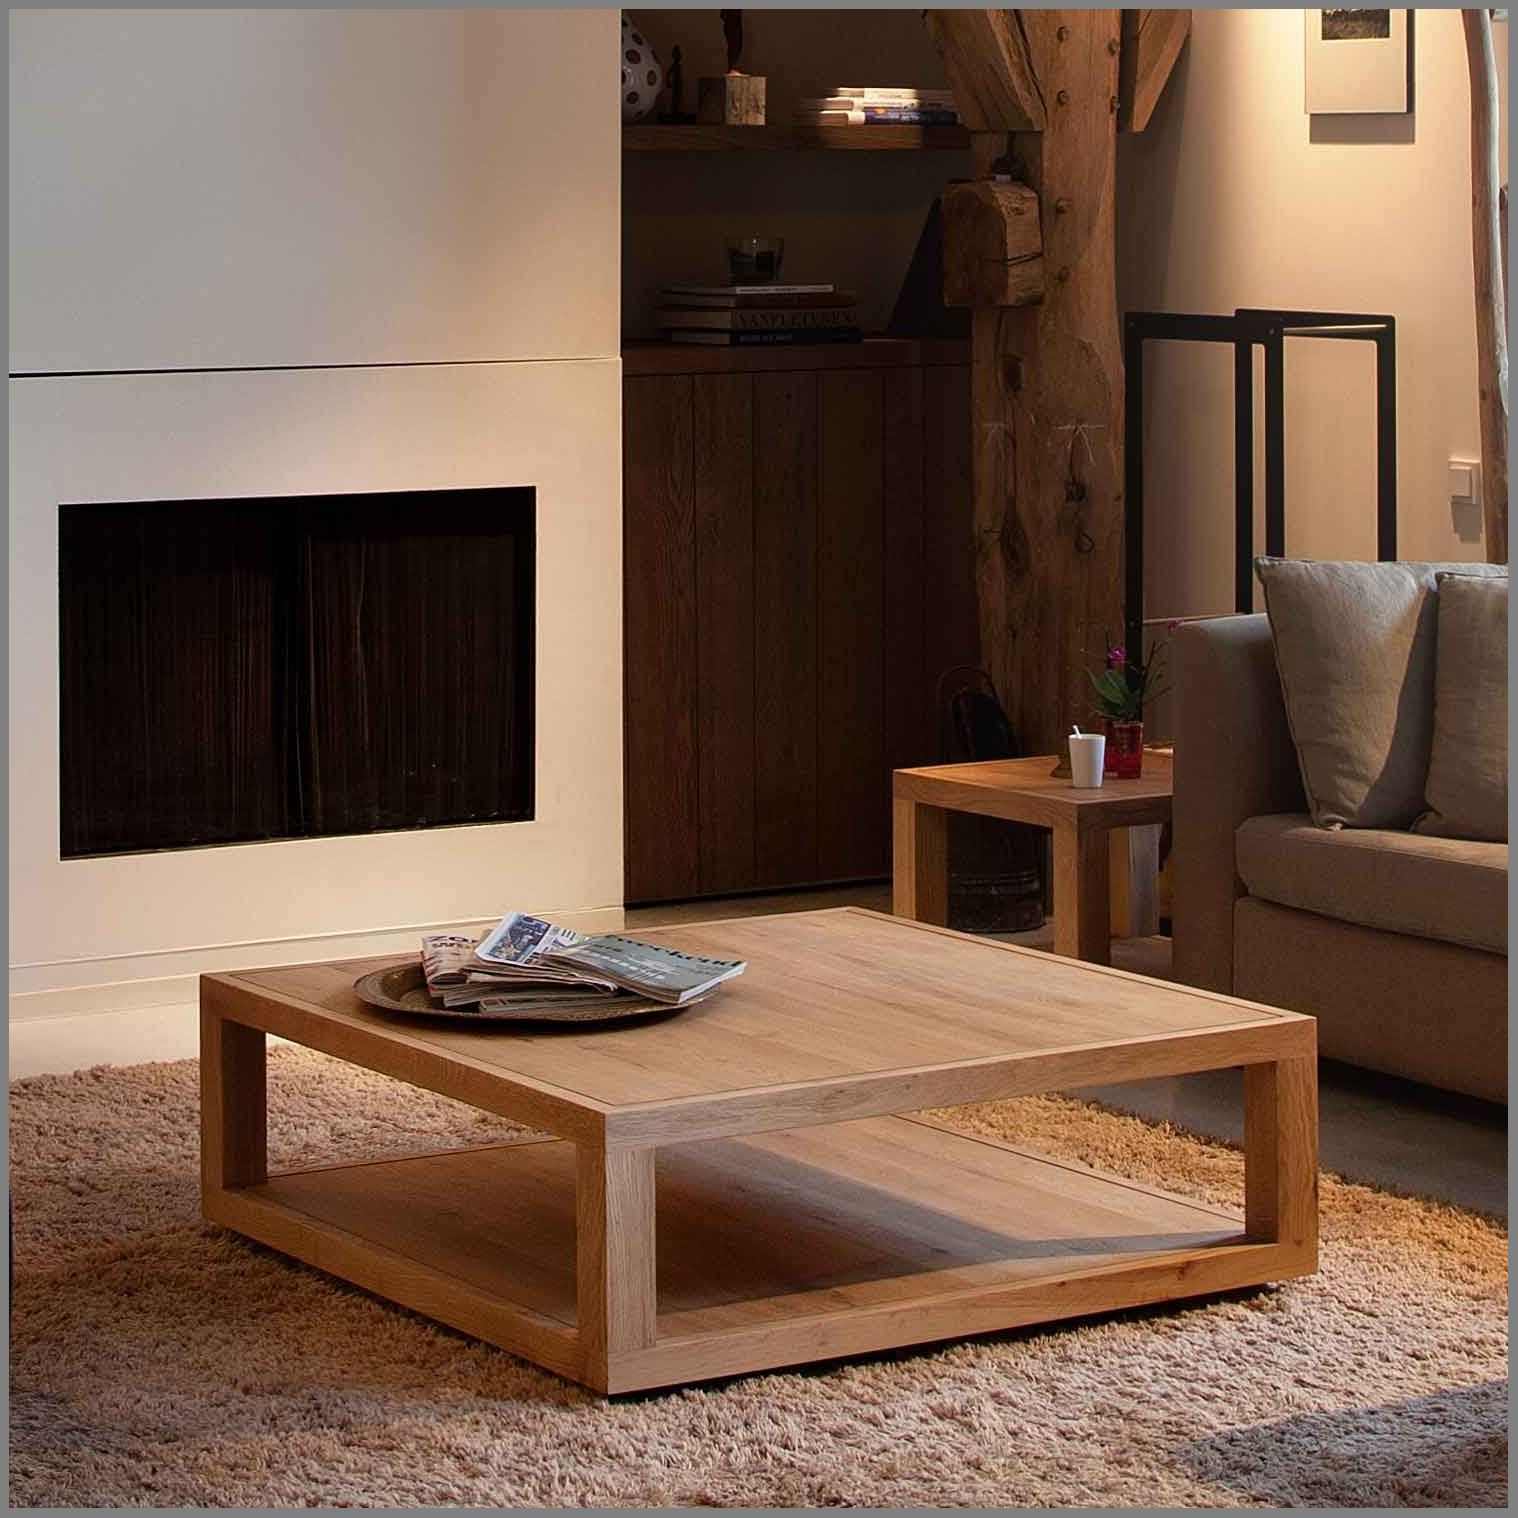 best coffee accent tables side for small spaces living room near charming furniture wood cabinet legs bar stool table set diy white half moon console concrete and glass metal